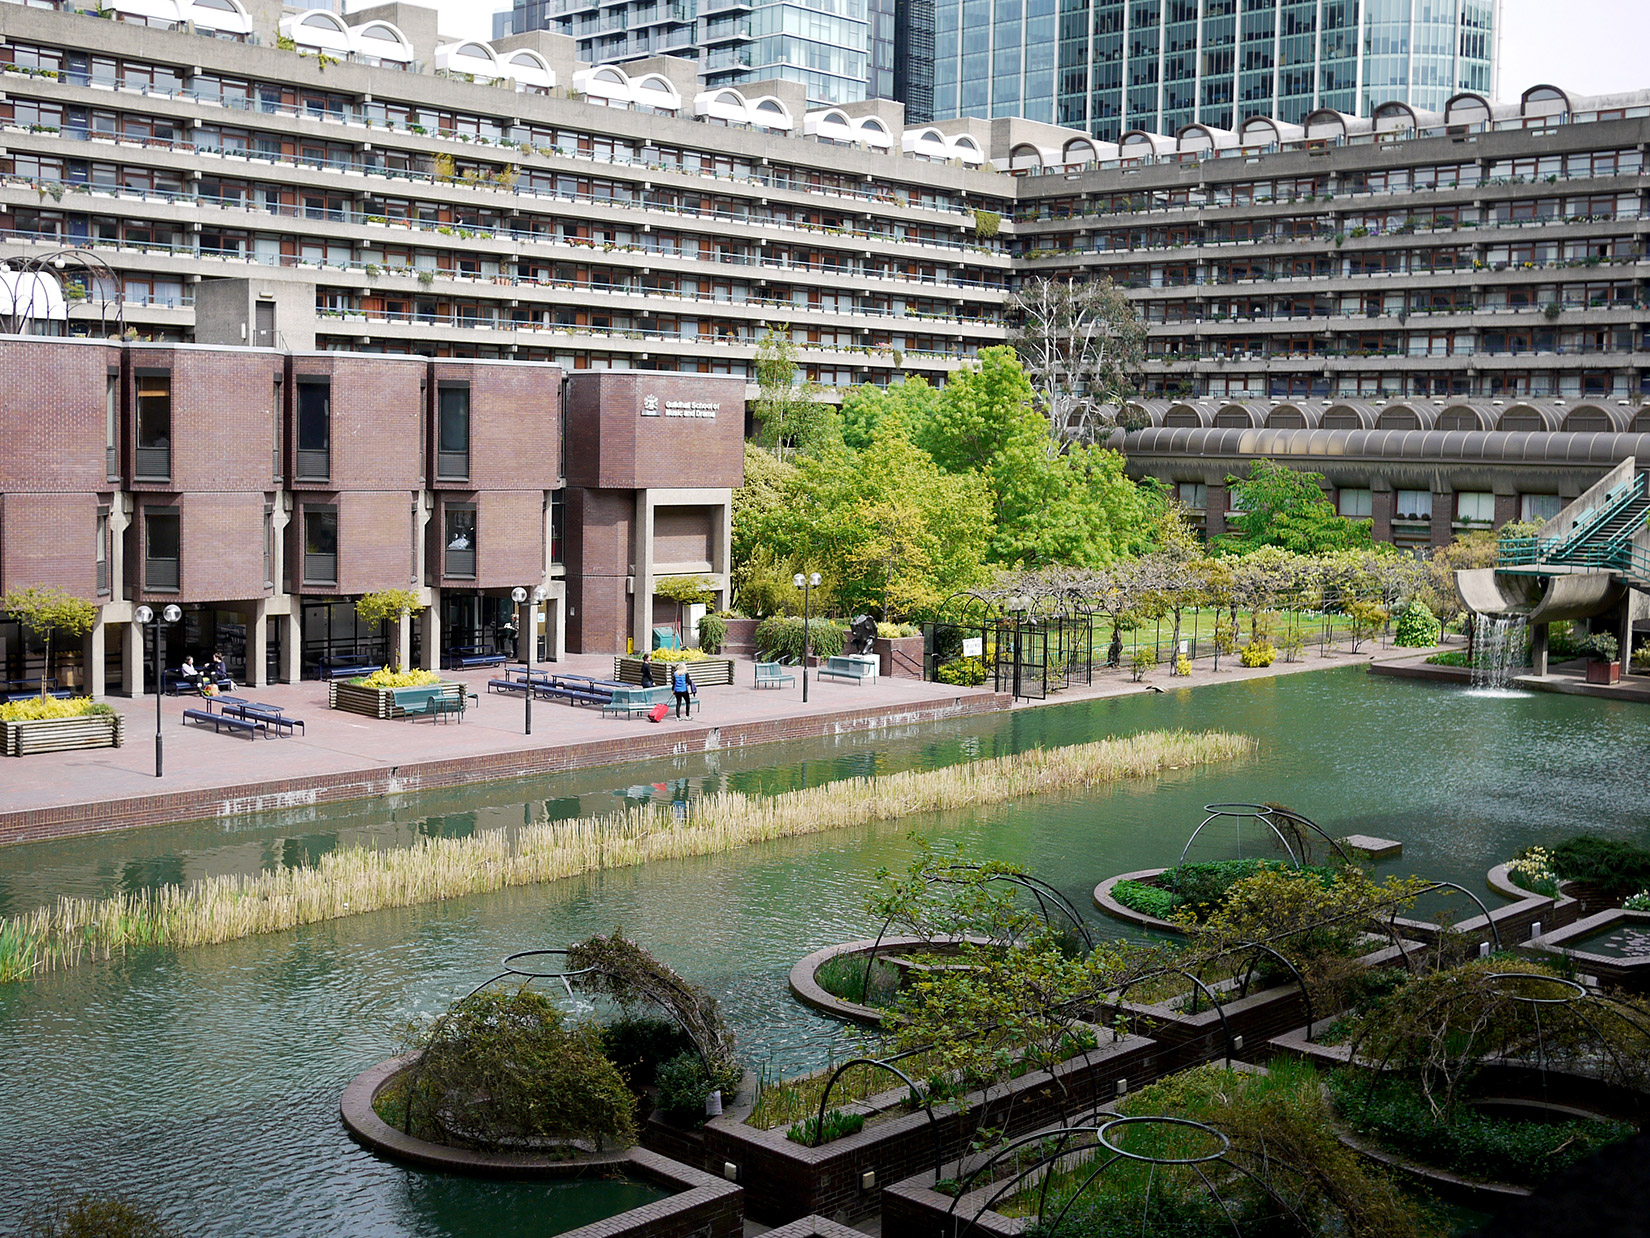 lead-image-Barbican,-This-Brutal-House.